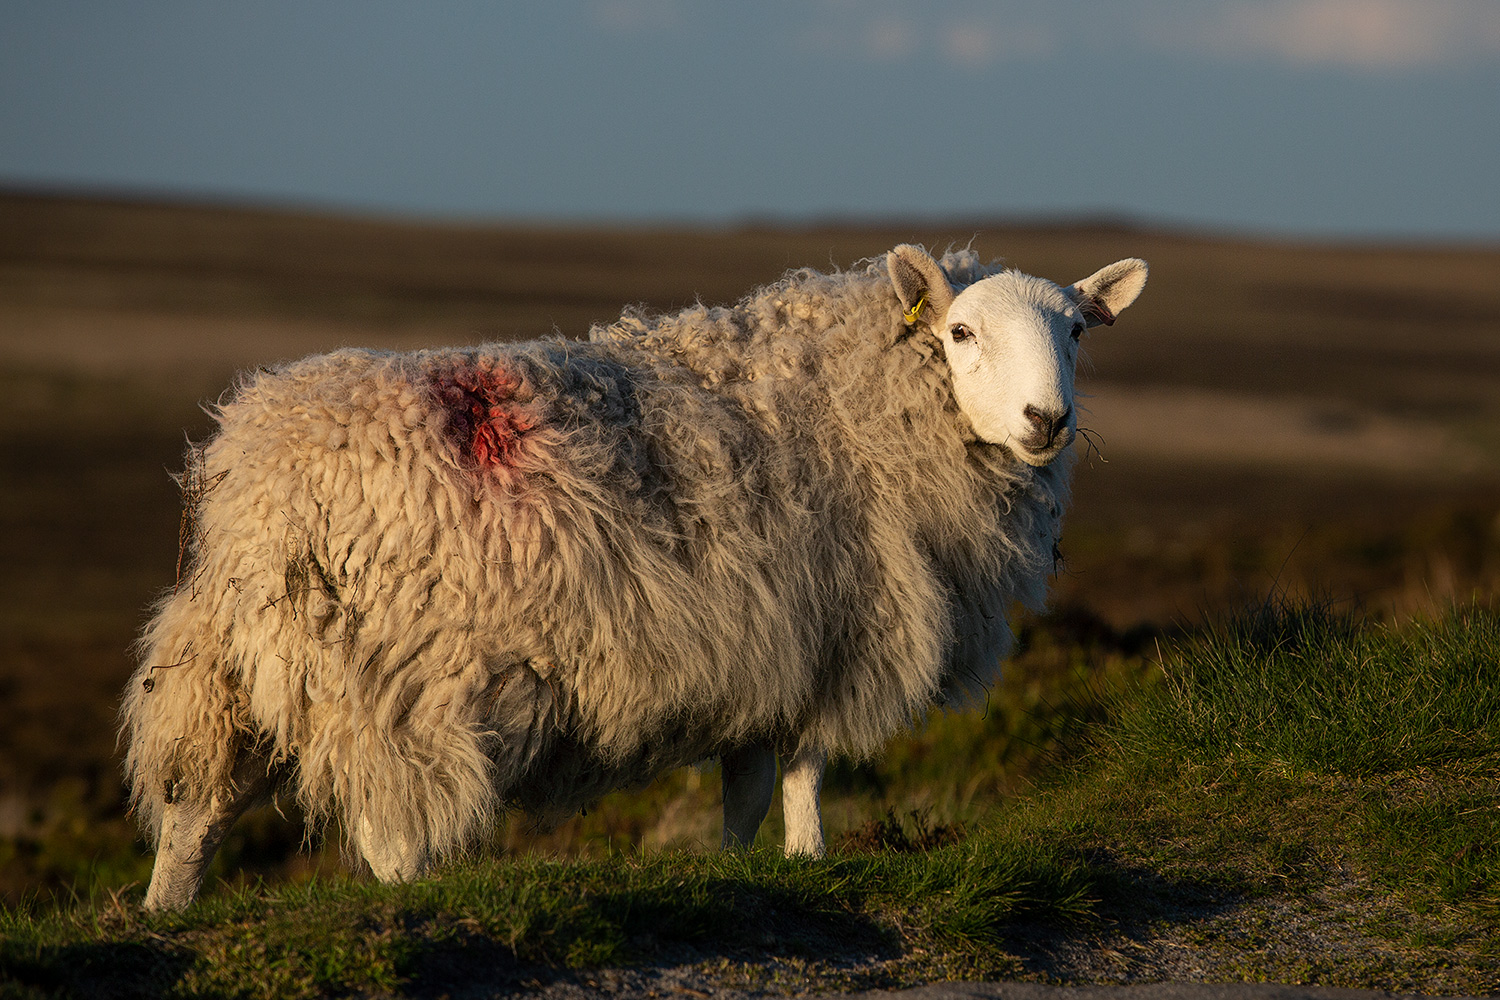 Image: High contrast subjects, like this sheep's white face lit directly by the setting sun, w...